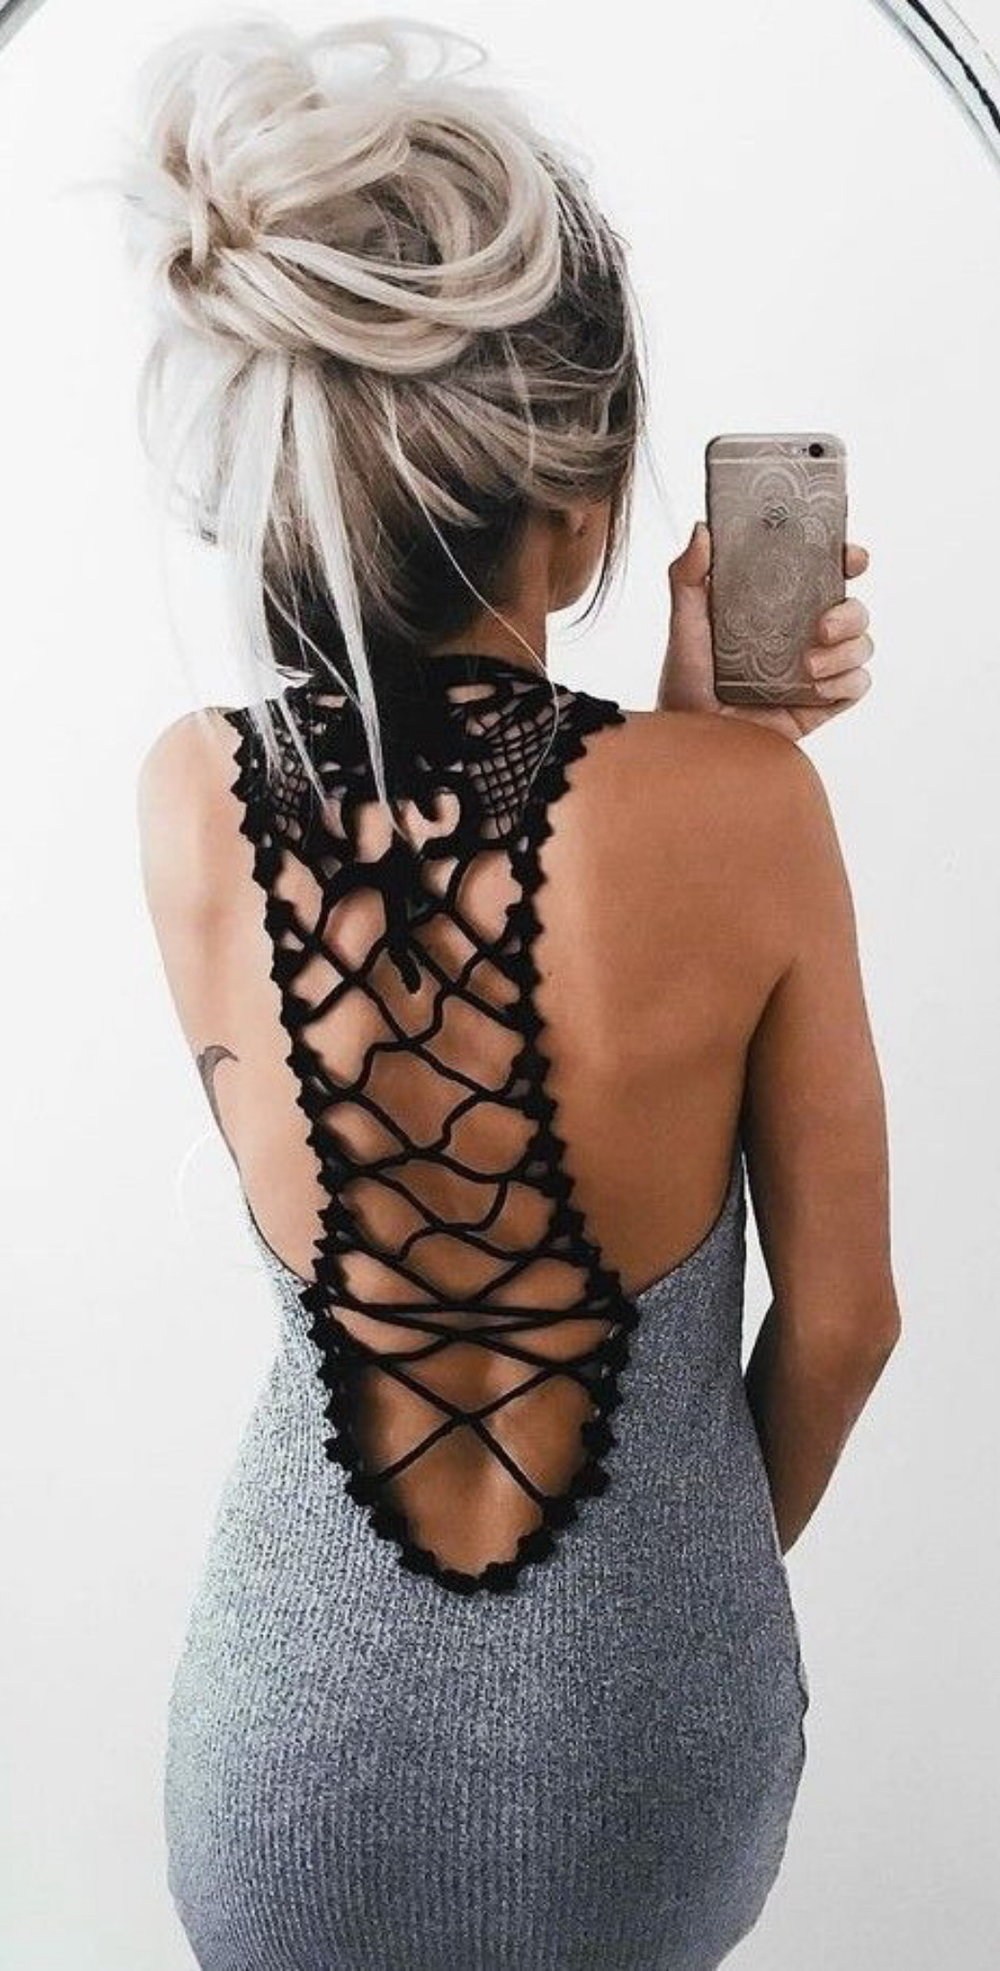 https://outfitshunter.com/article/60-ultimate-trending-summer-outfits-1#7Y15hZMcmR